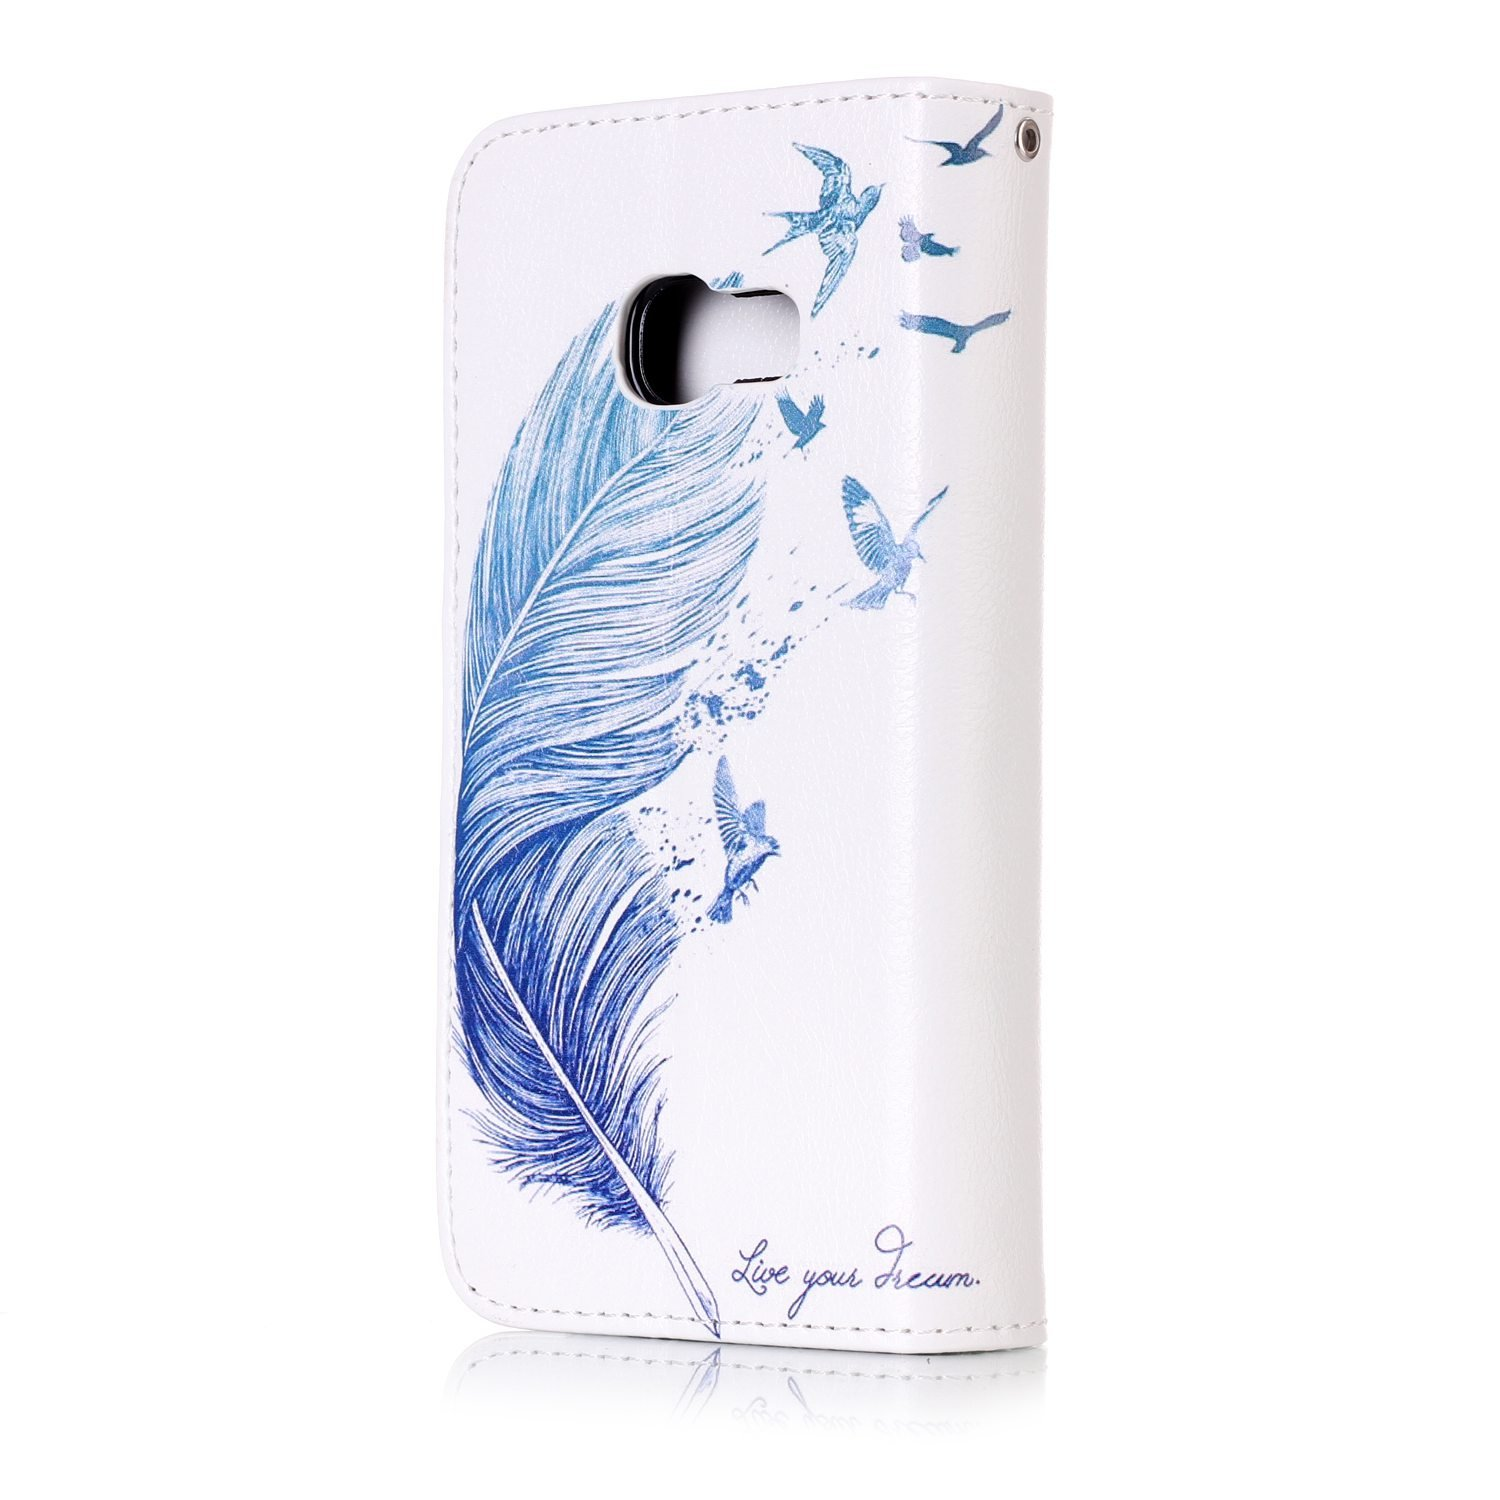 JuSha for Apply to Samsung Galaxy A3 2017 A320 Edge Case PU Leather Wallet Magnetic Cover Skin(Blue Leaf Mobile Phone Case)